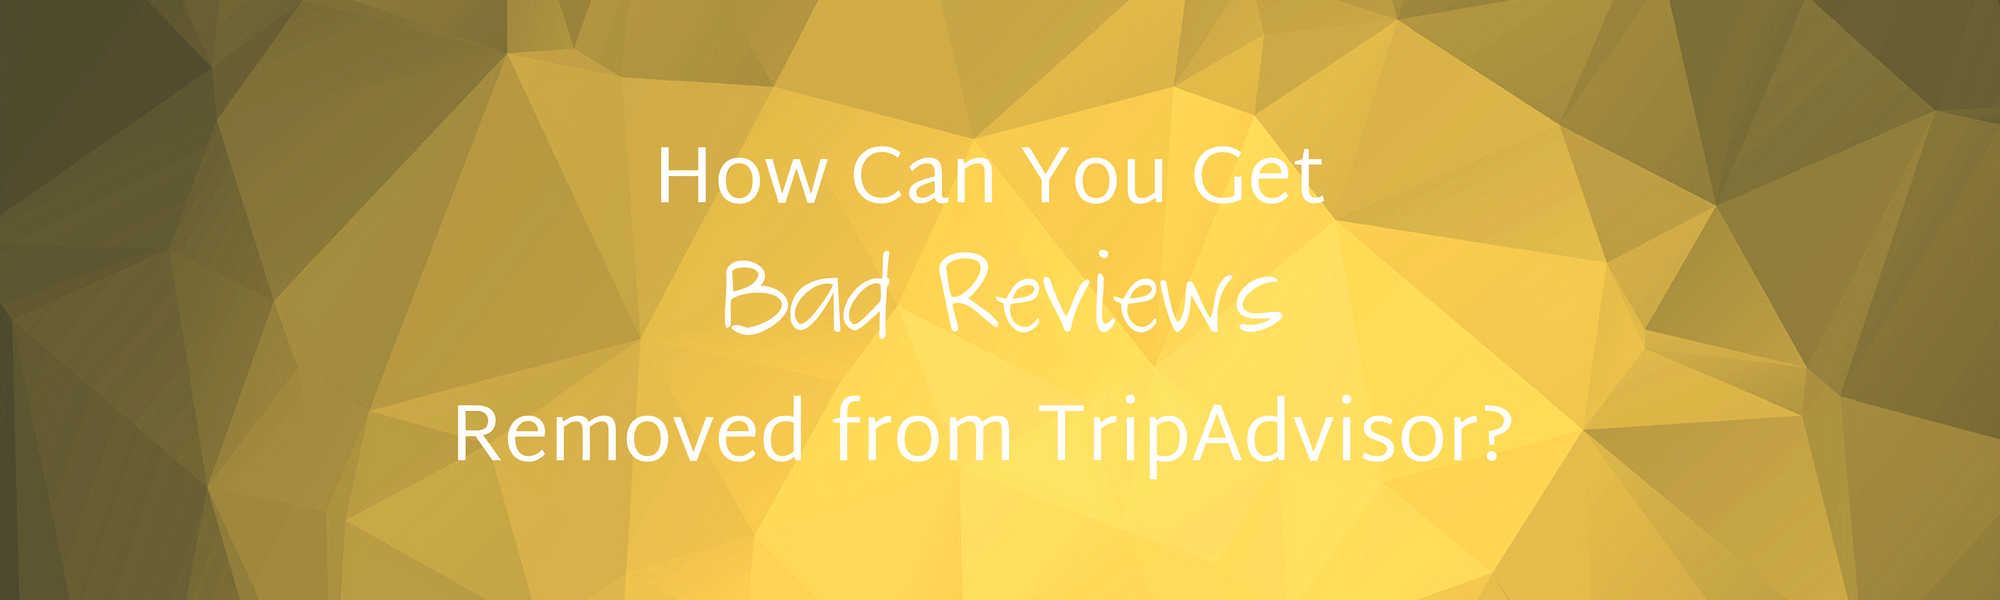 Remove Bad Reviews from TripAdvisor